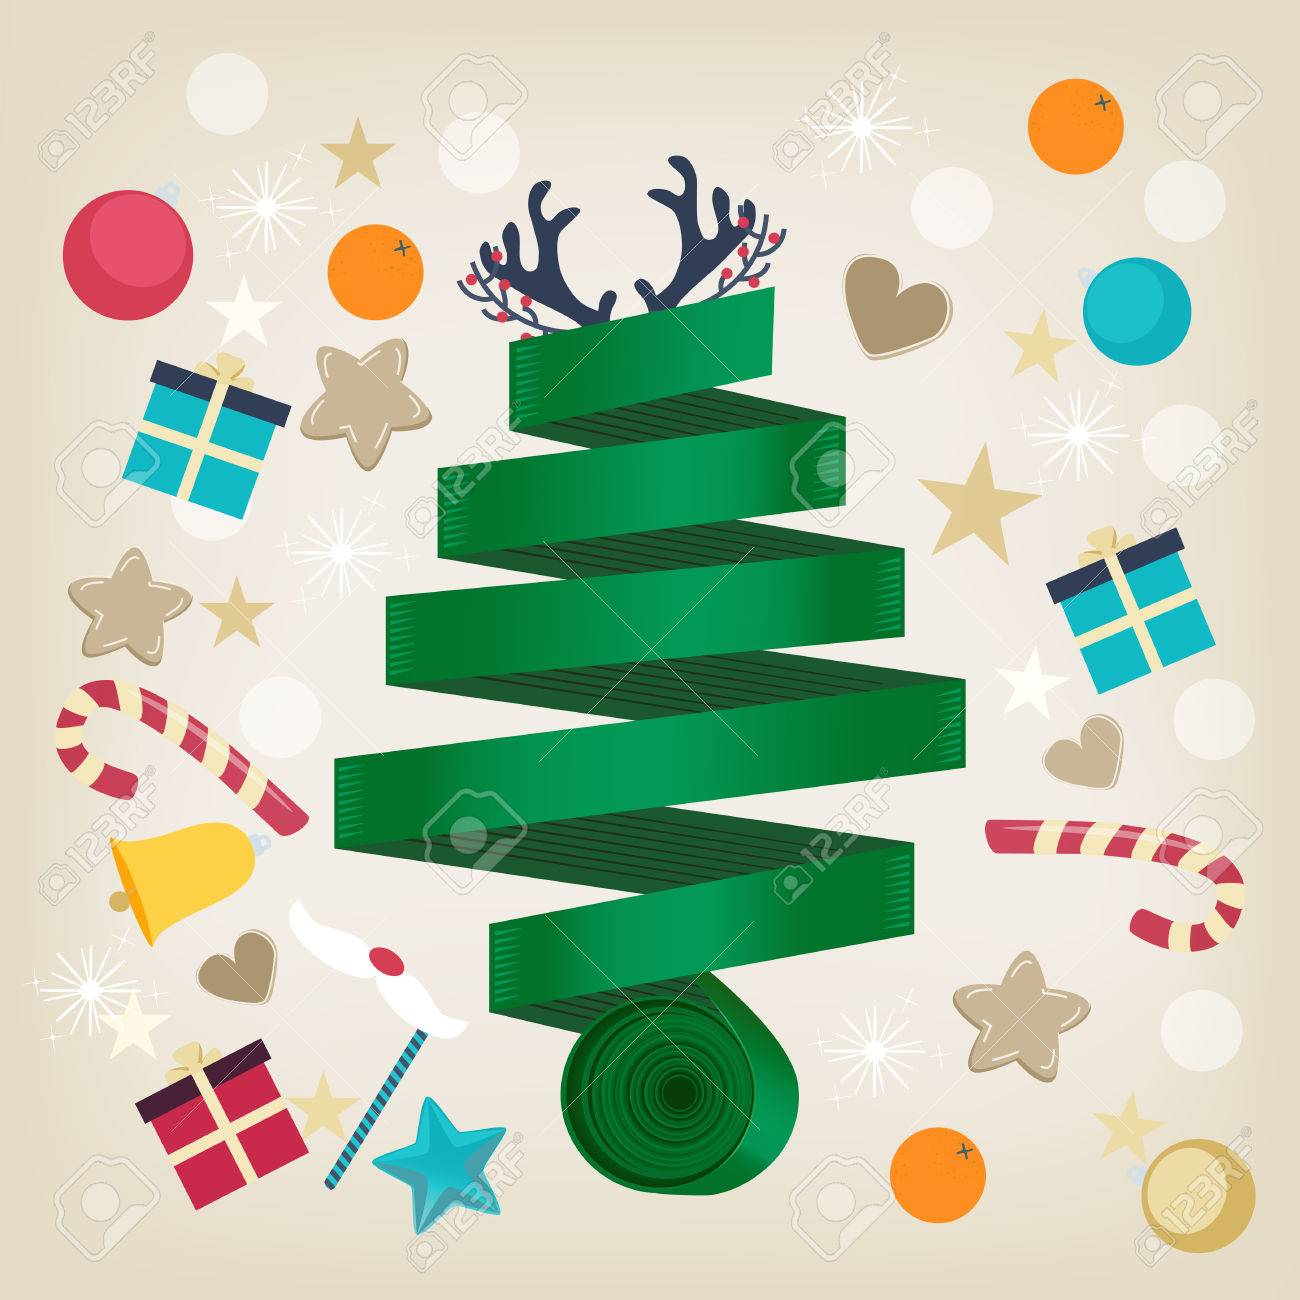 Twirled green ribbon Christmas tree card design topped with reindeer antlers and surrounded by Xmas icons of candy, gifts, oranges, hearts, stars, snowflakes and a bell in square format Stock Vector - 48104836